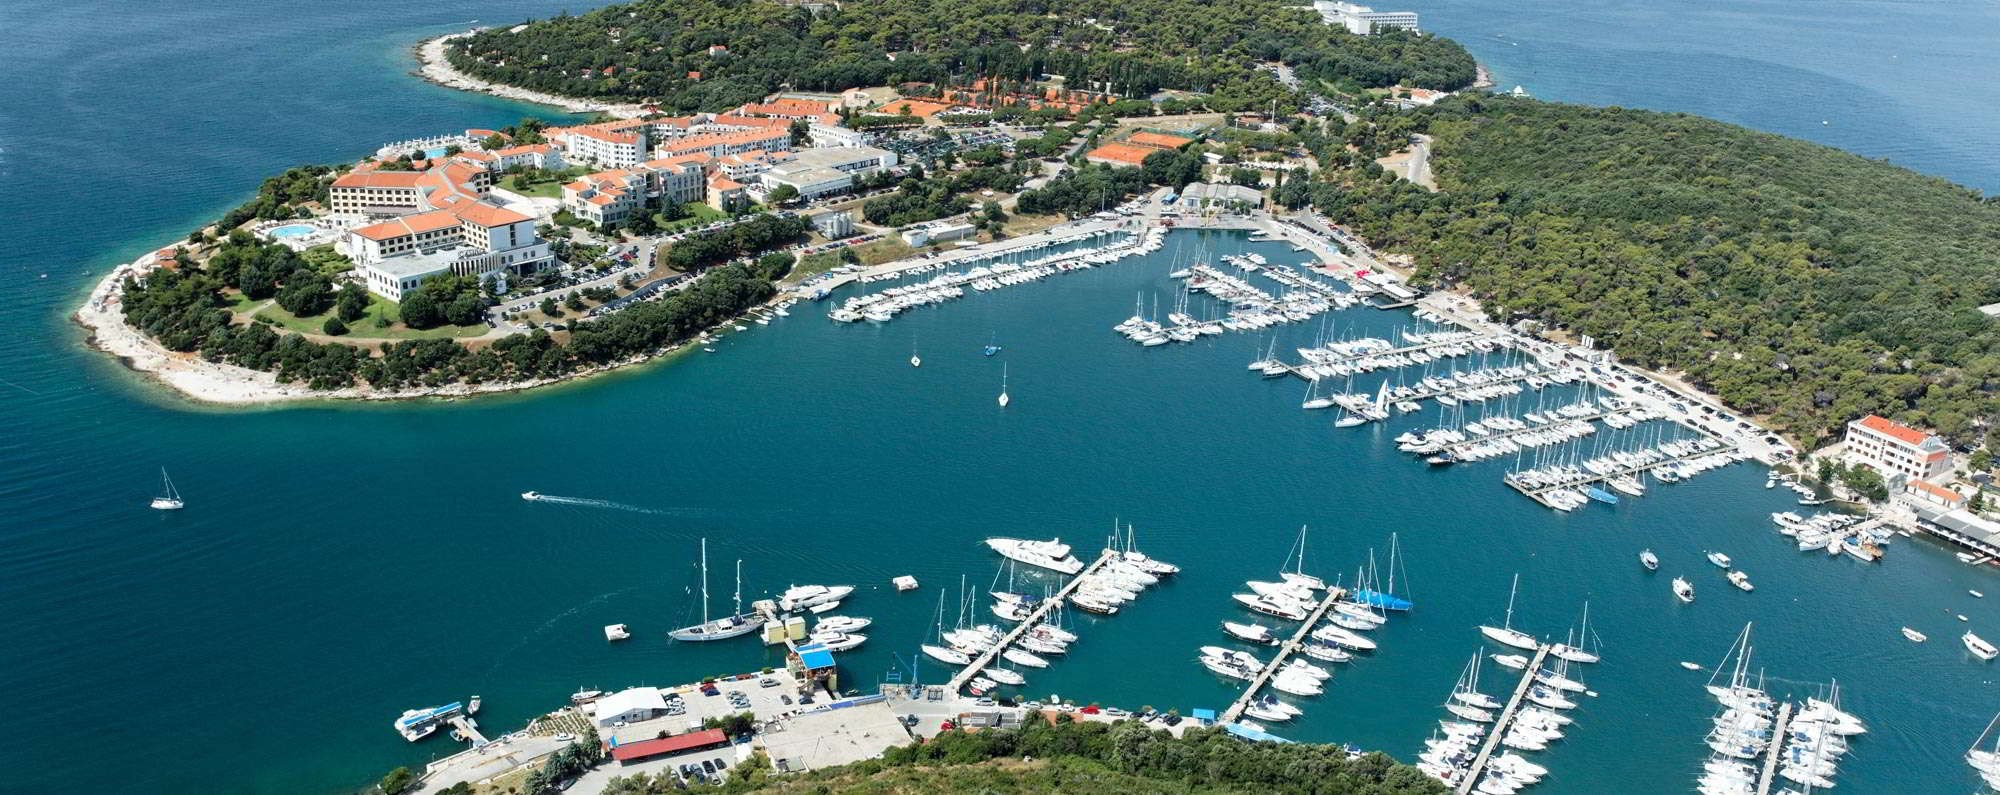 Yacht charter in Pula